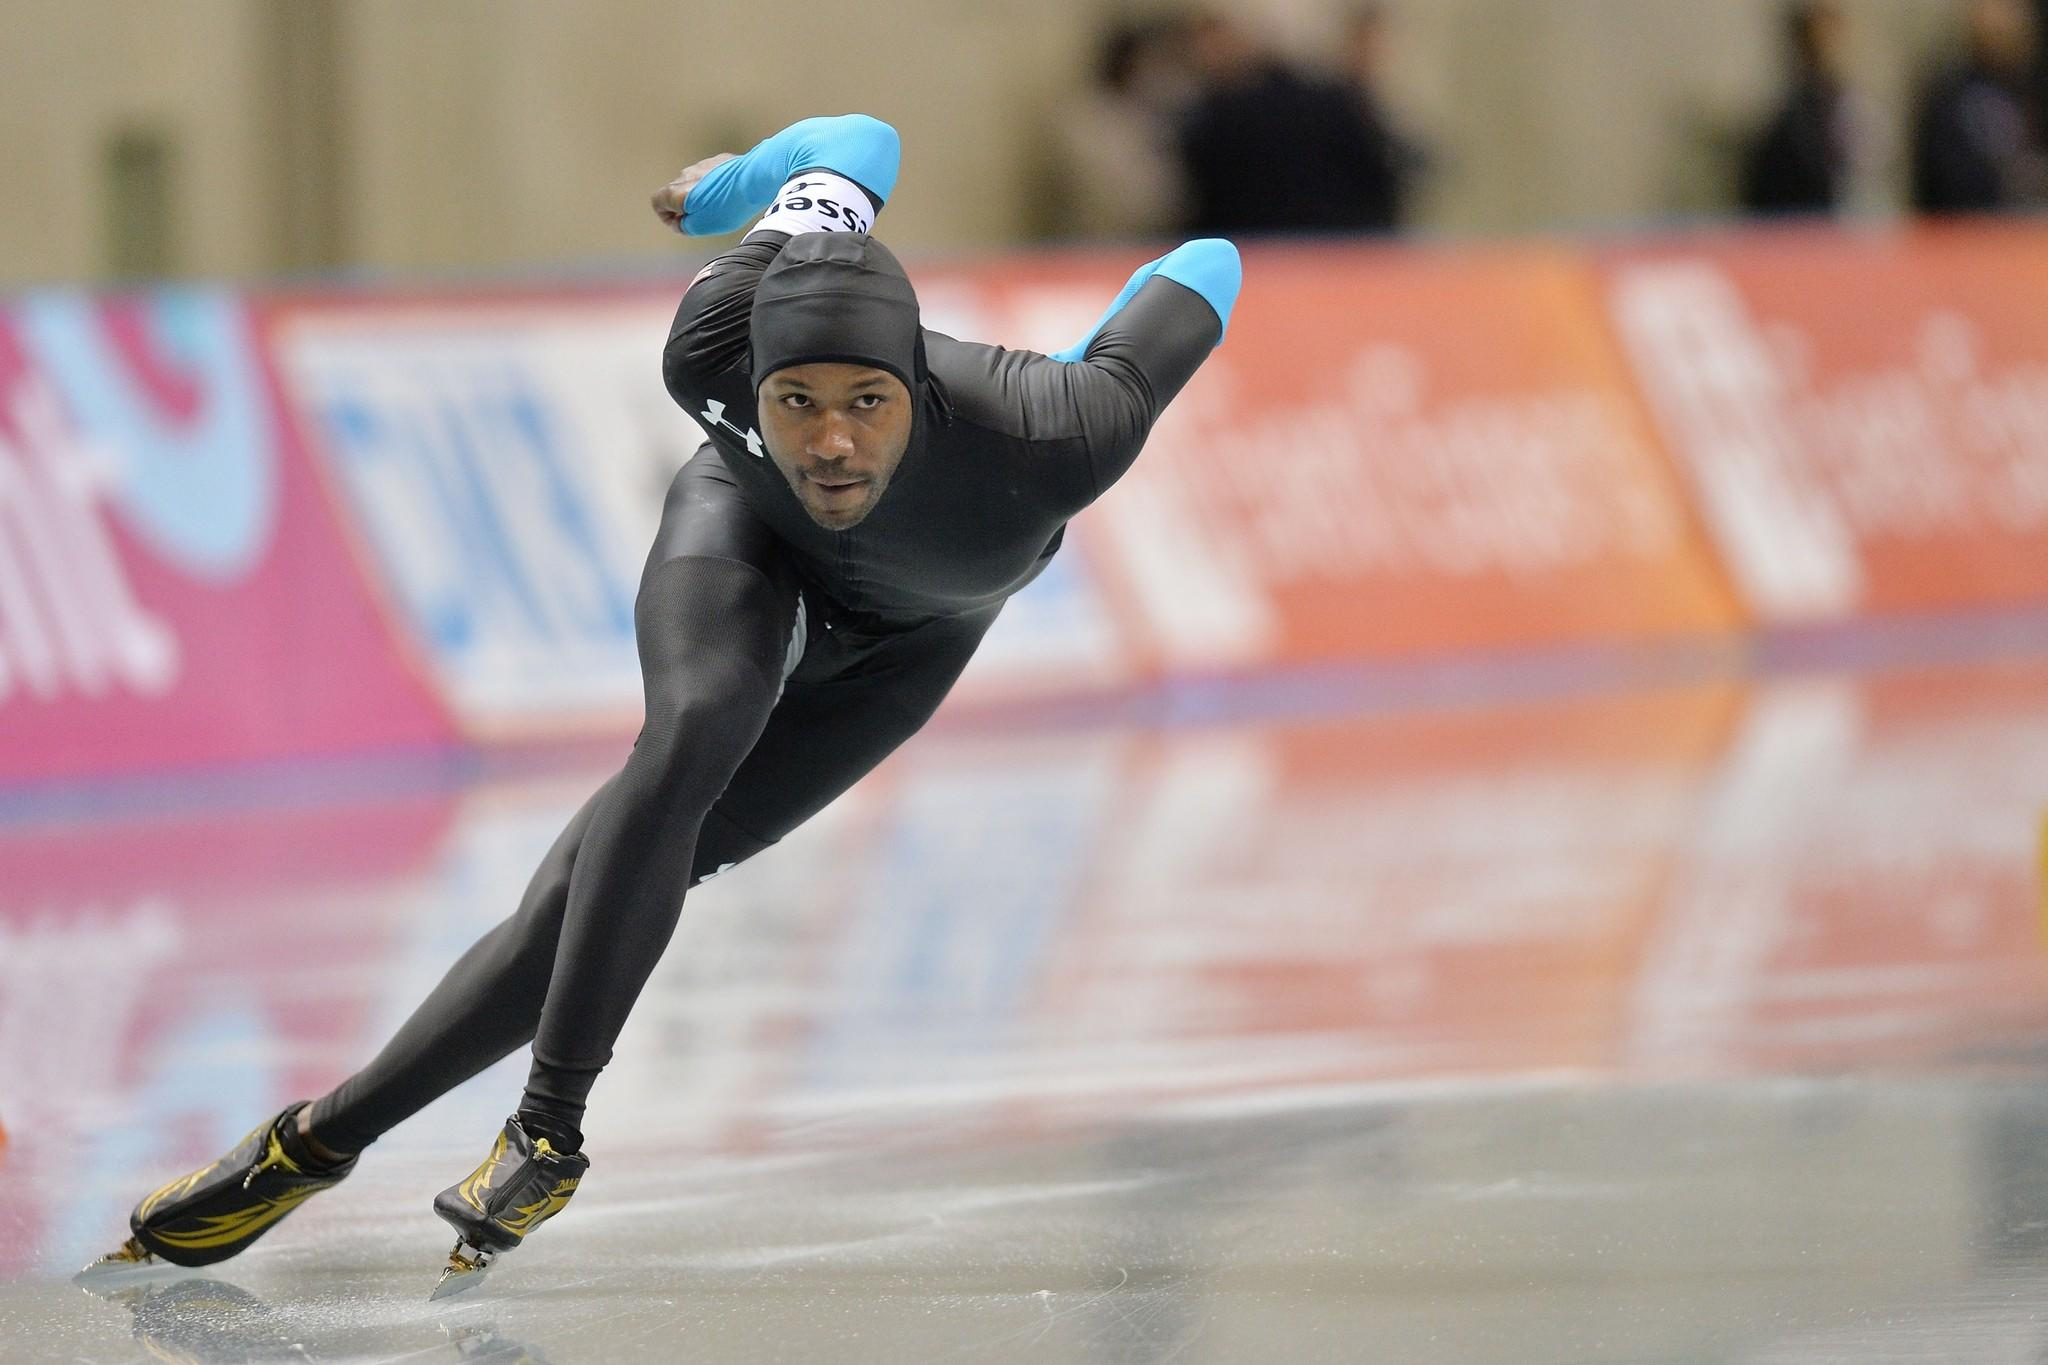 Shani Davis competes during Essent ISU World Sprint Speed Skating Championships.